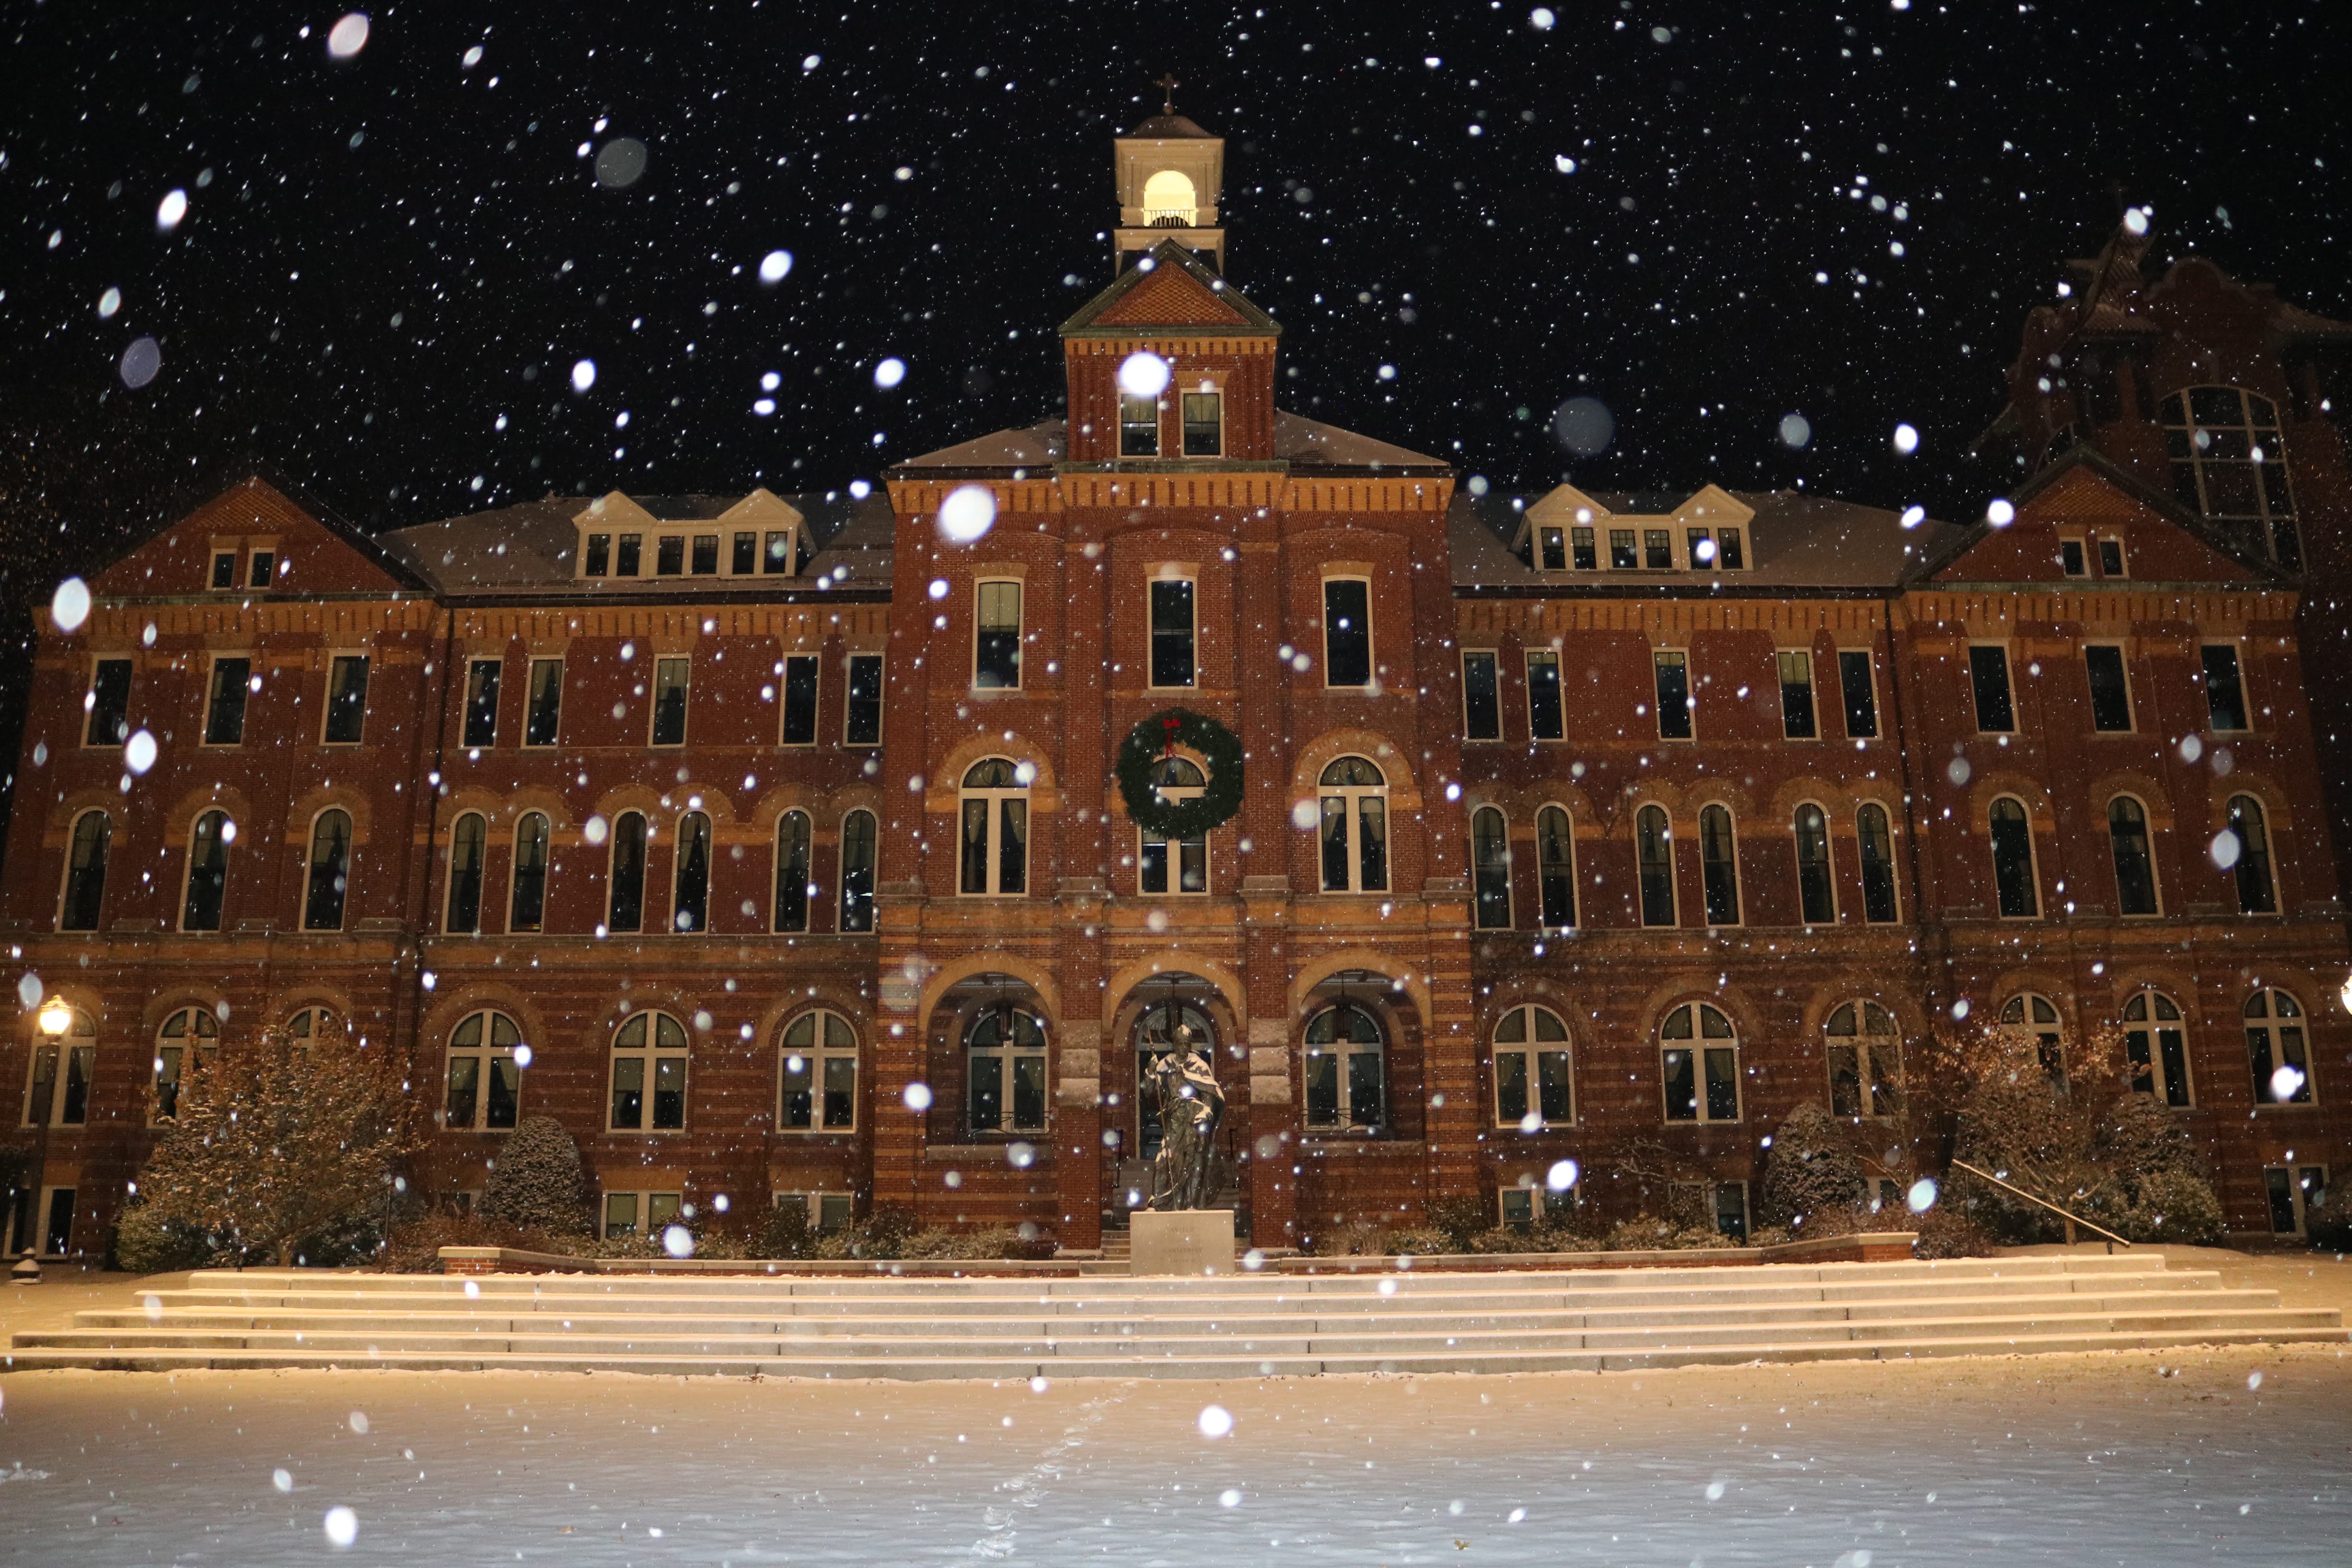 Snow falls at night on Alumni Hall